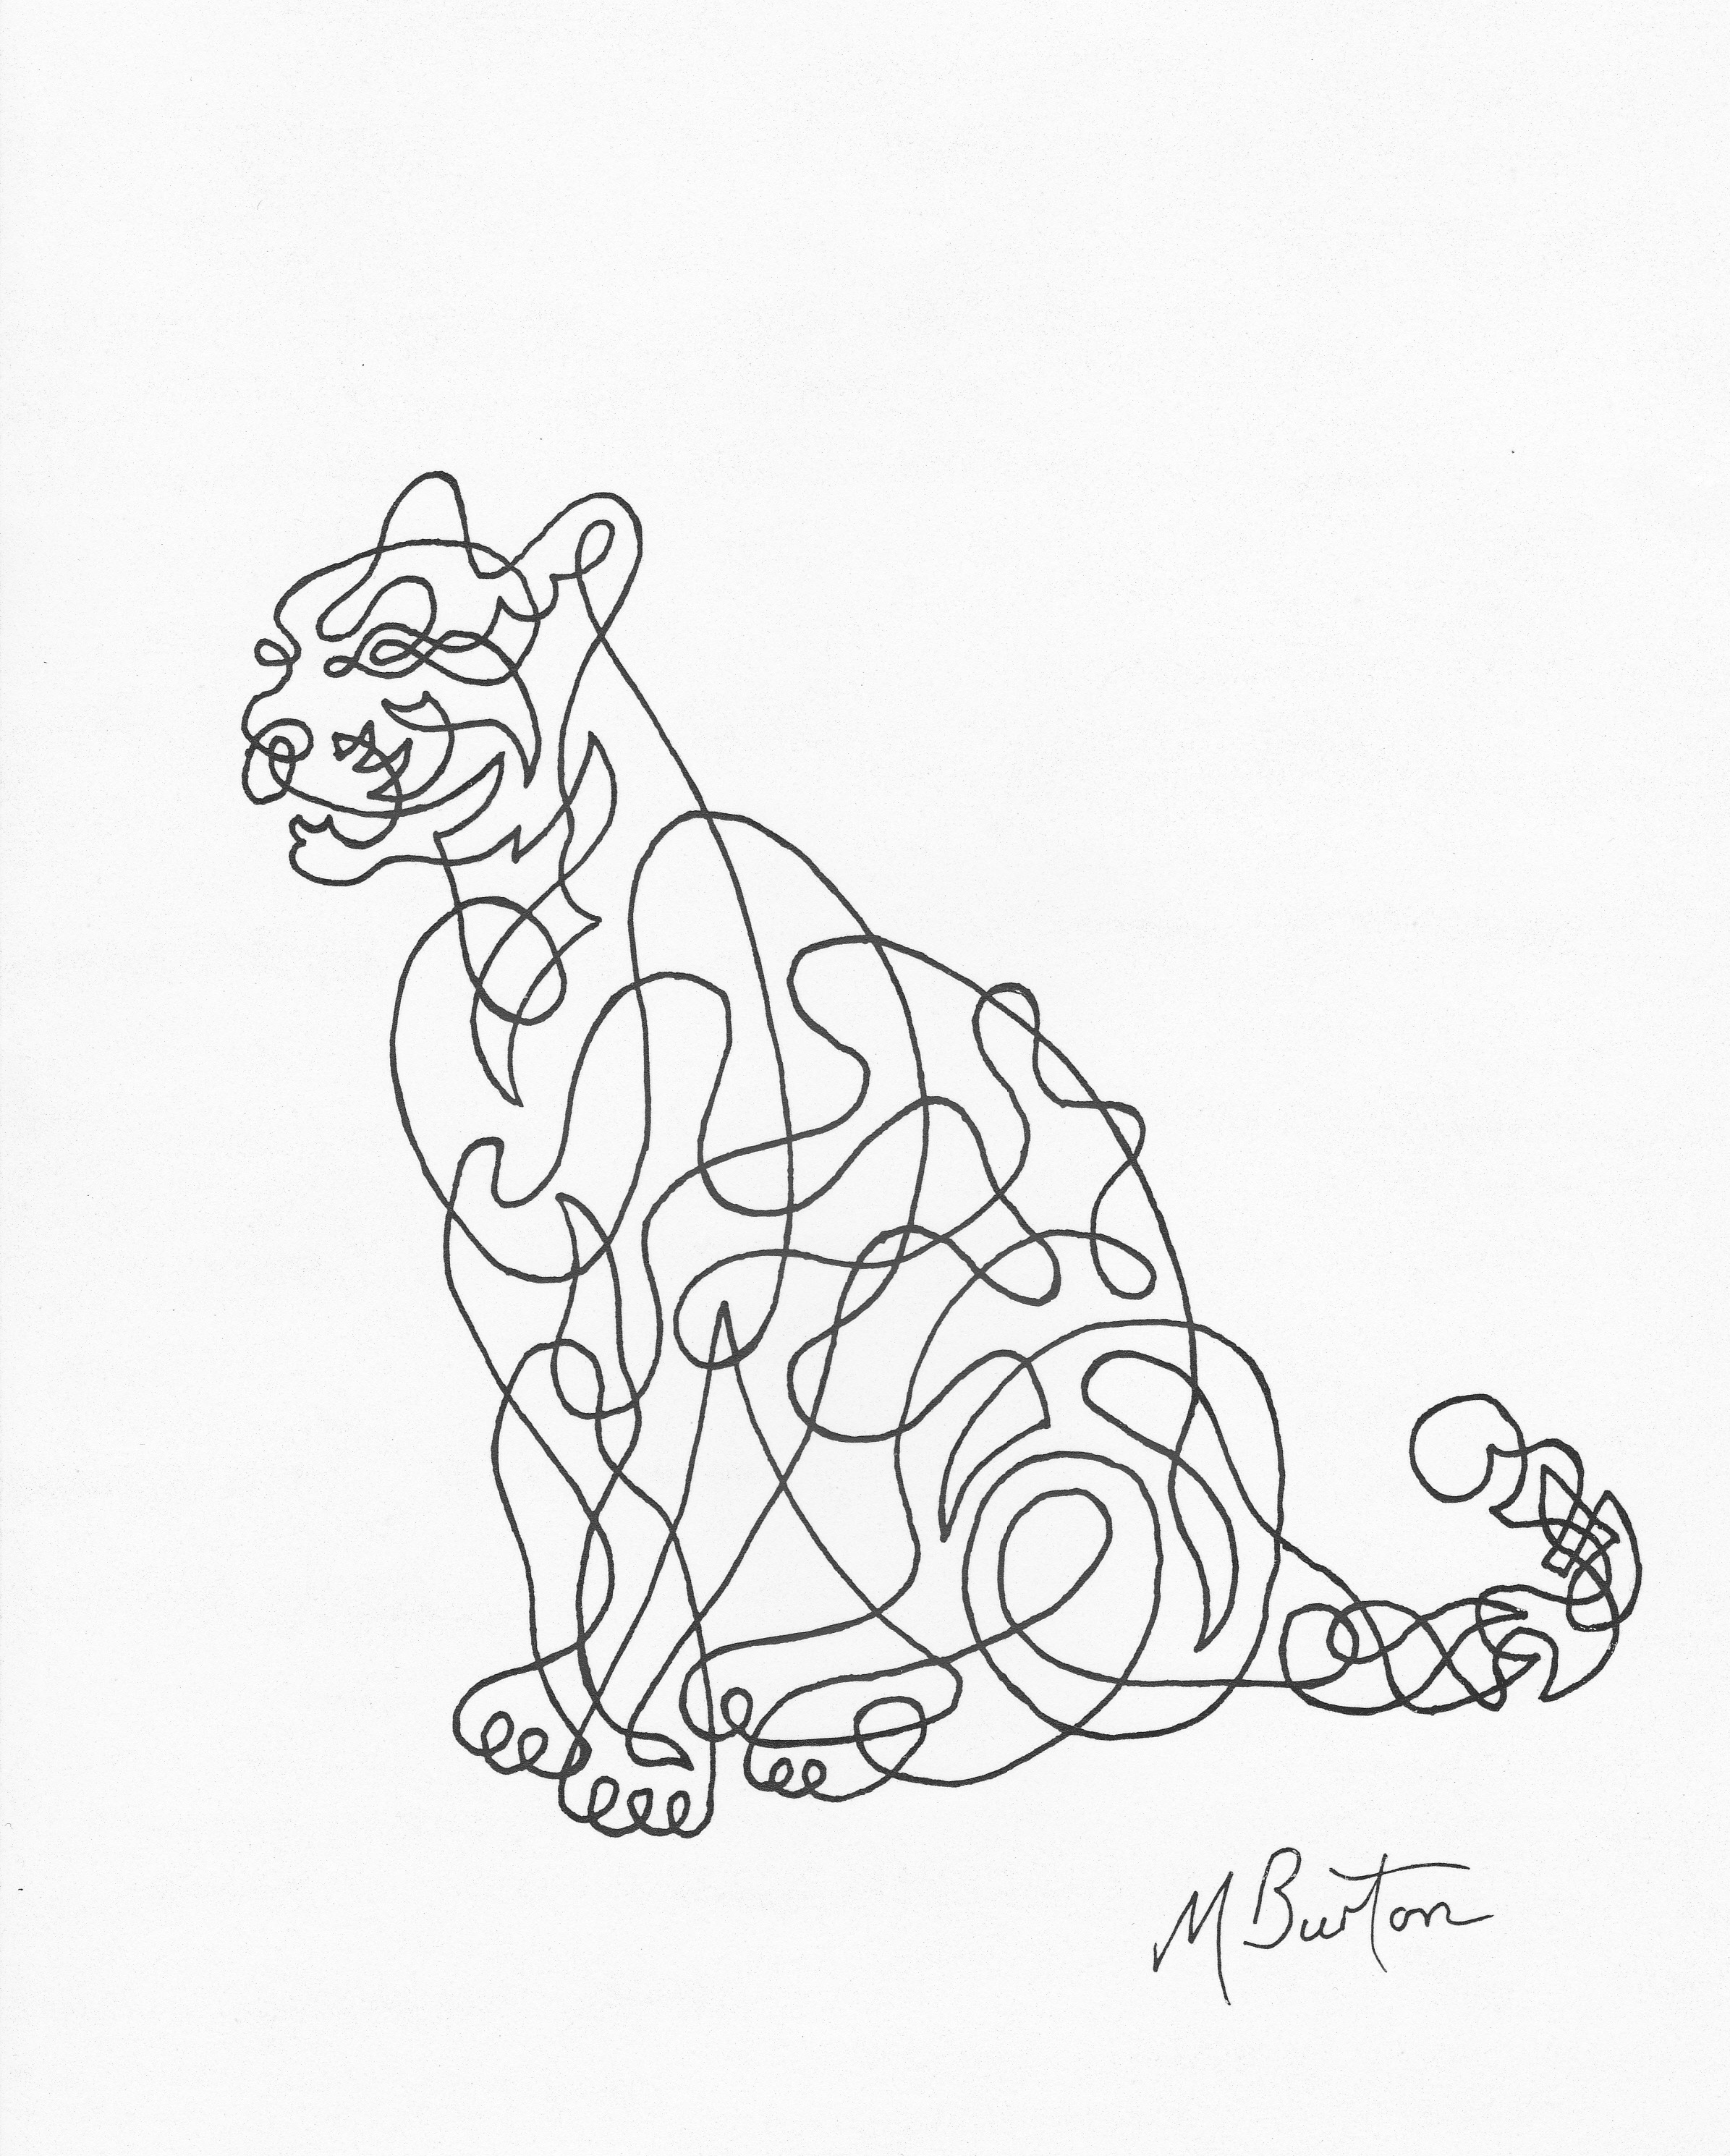 Famous Line Art Drawings : Association of animal artists mick burton